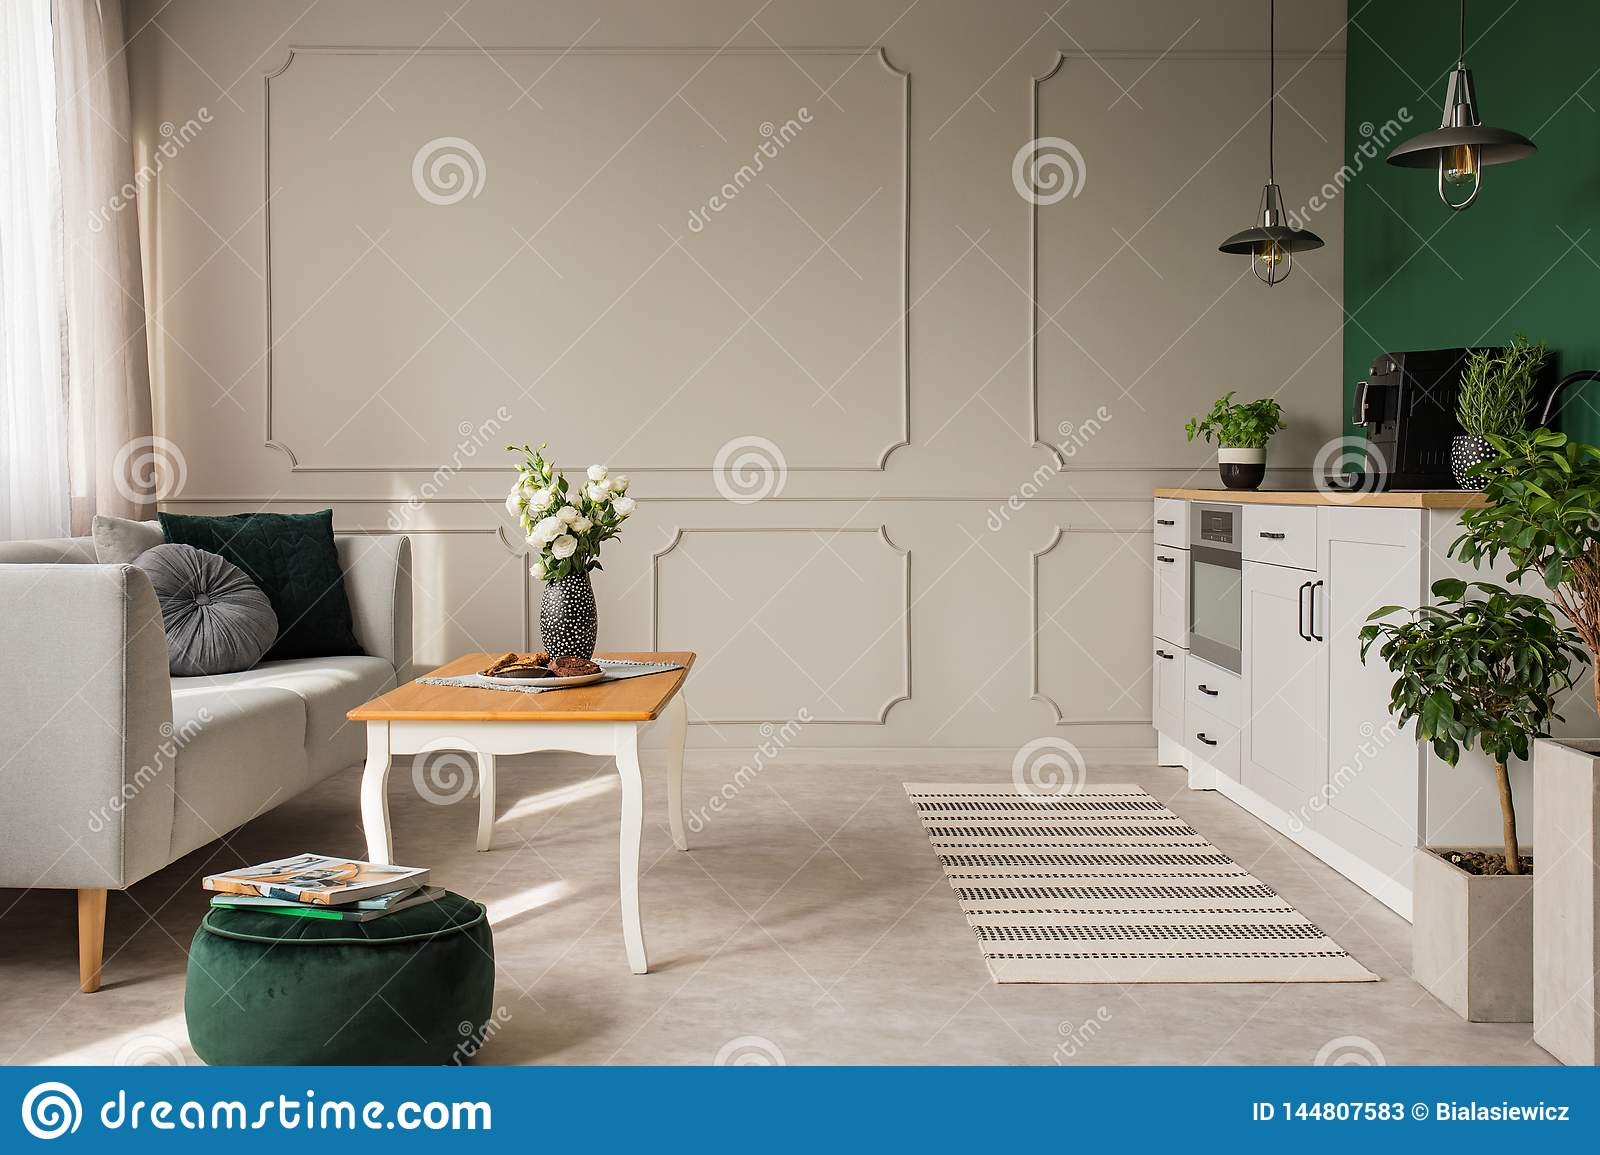 Empty Wall Of Small Kitchen And Living Room Interior Stock Image